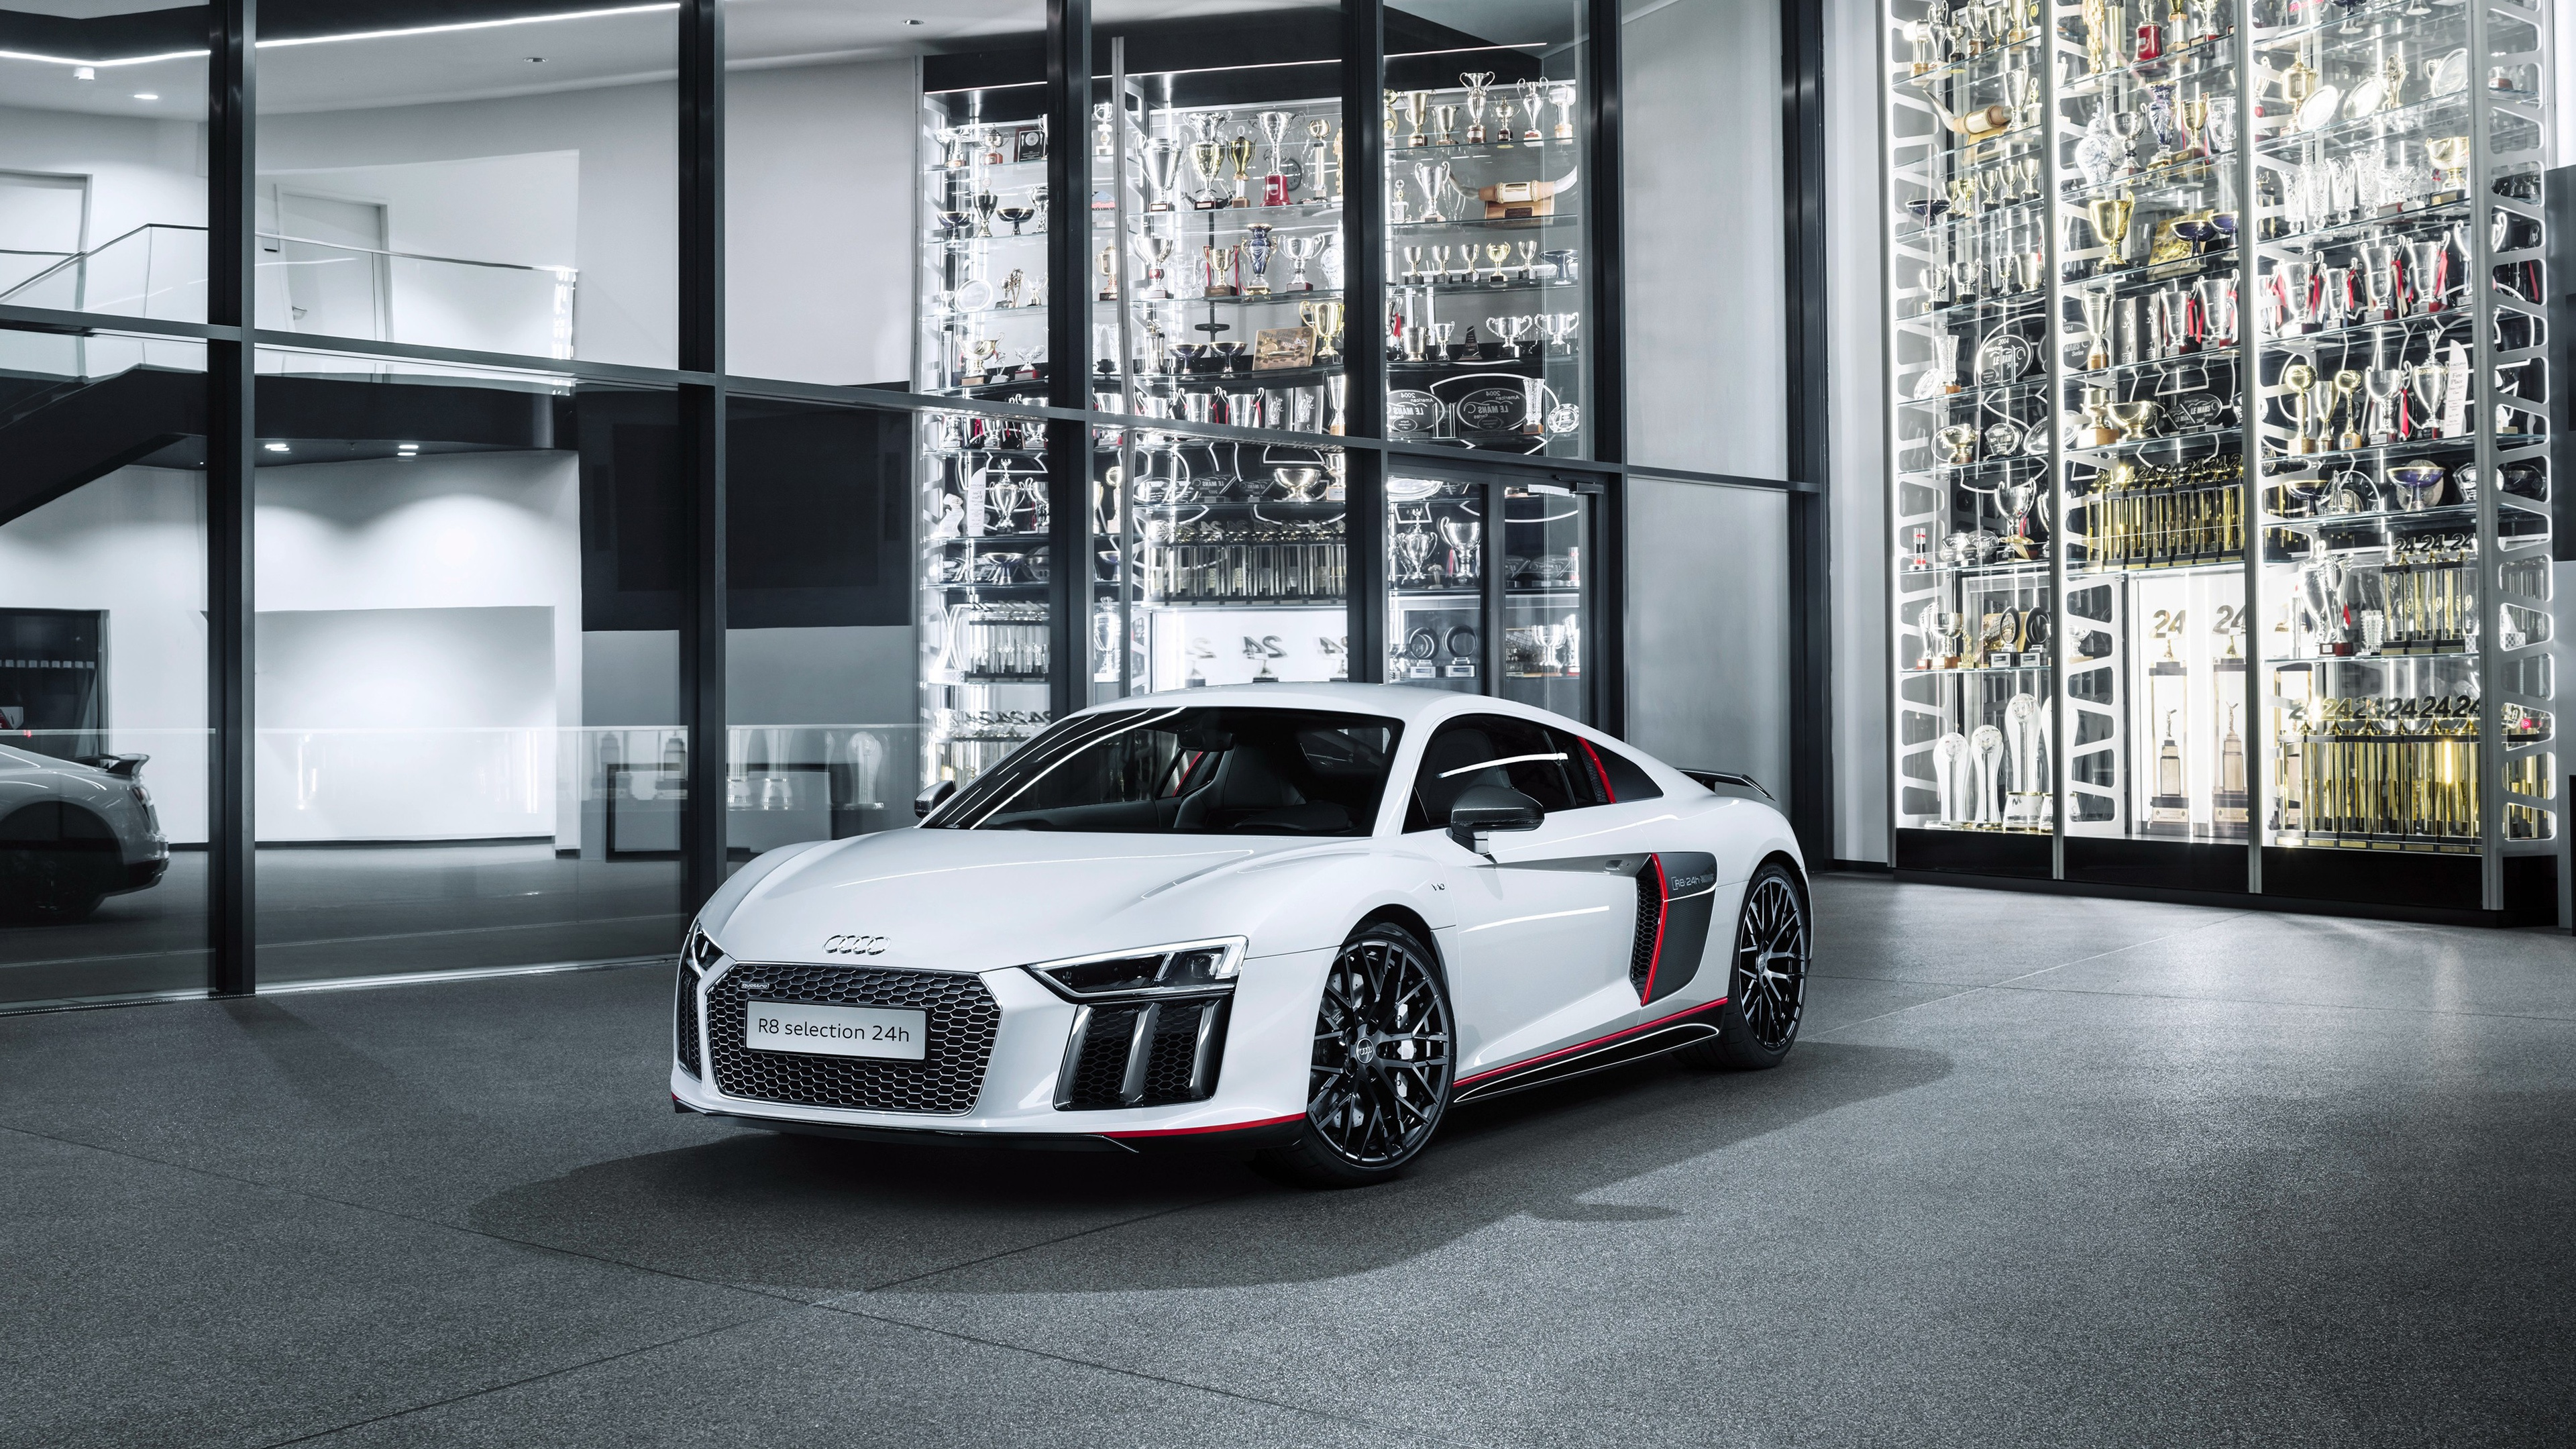 Audi R8 V10 Plus Selection 24h Special Edition 4k Wallpapers In Jpg